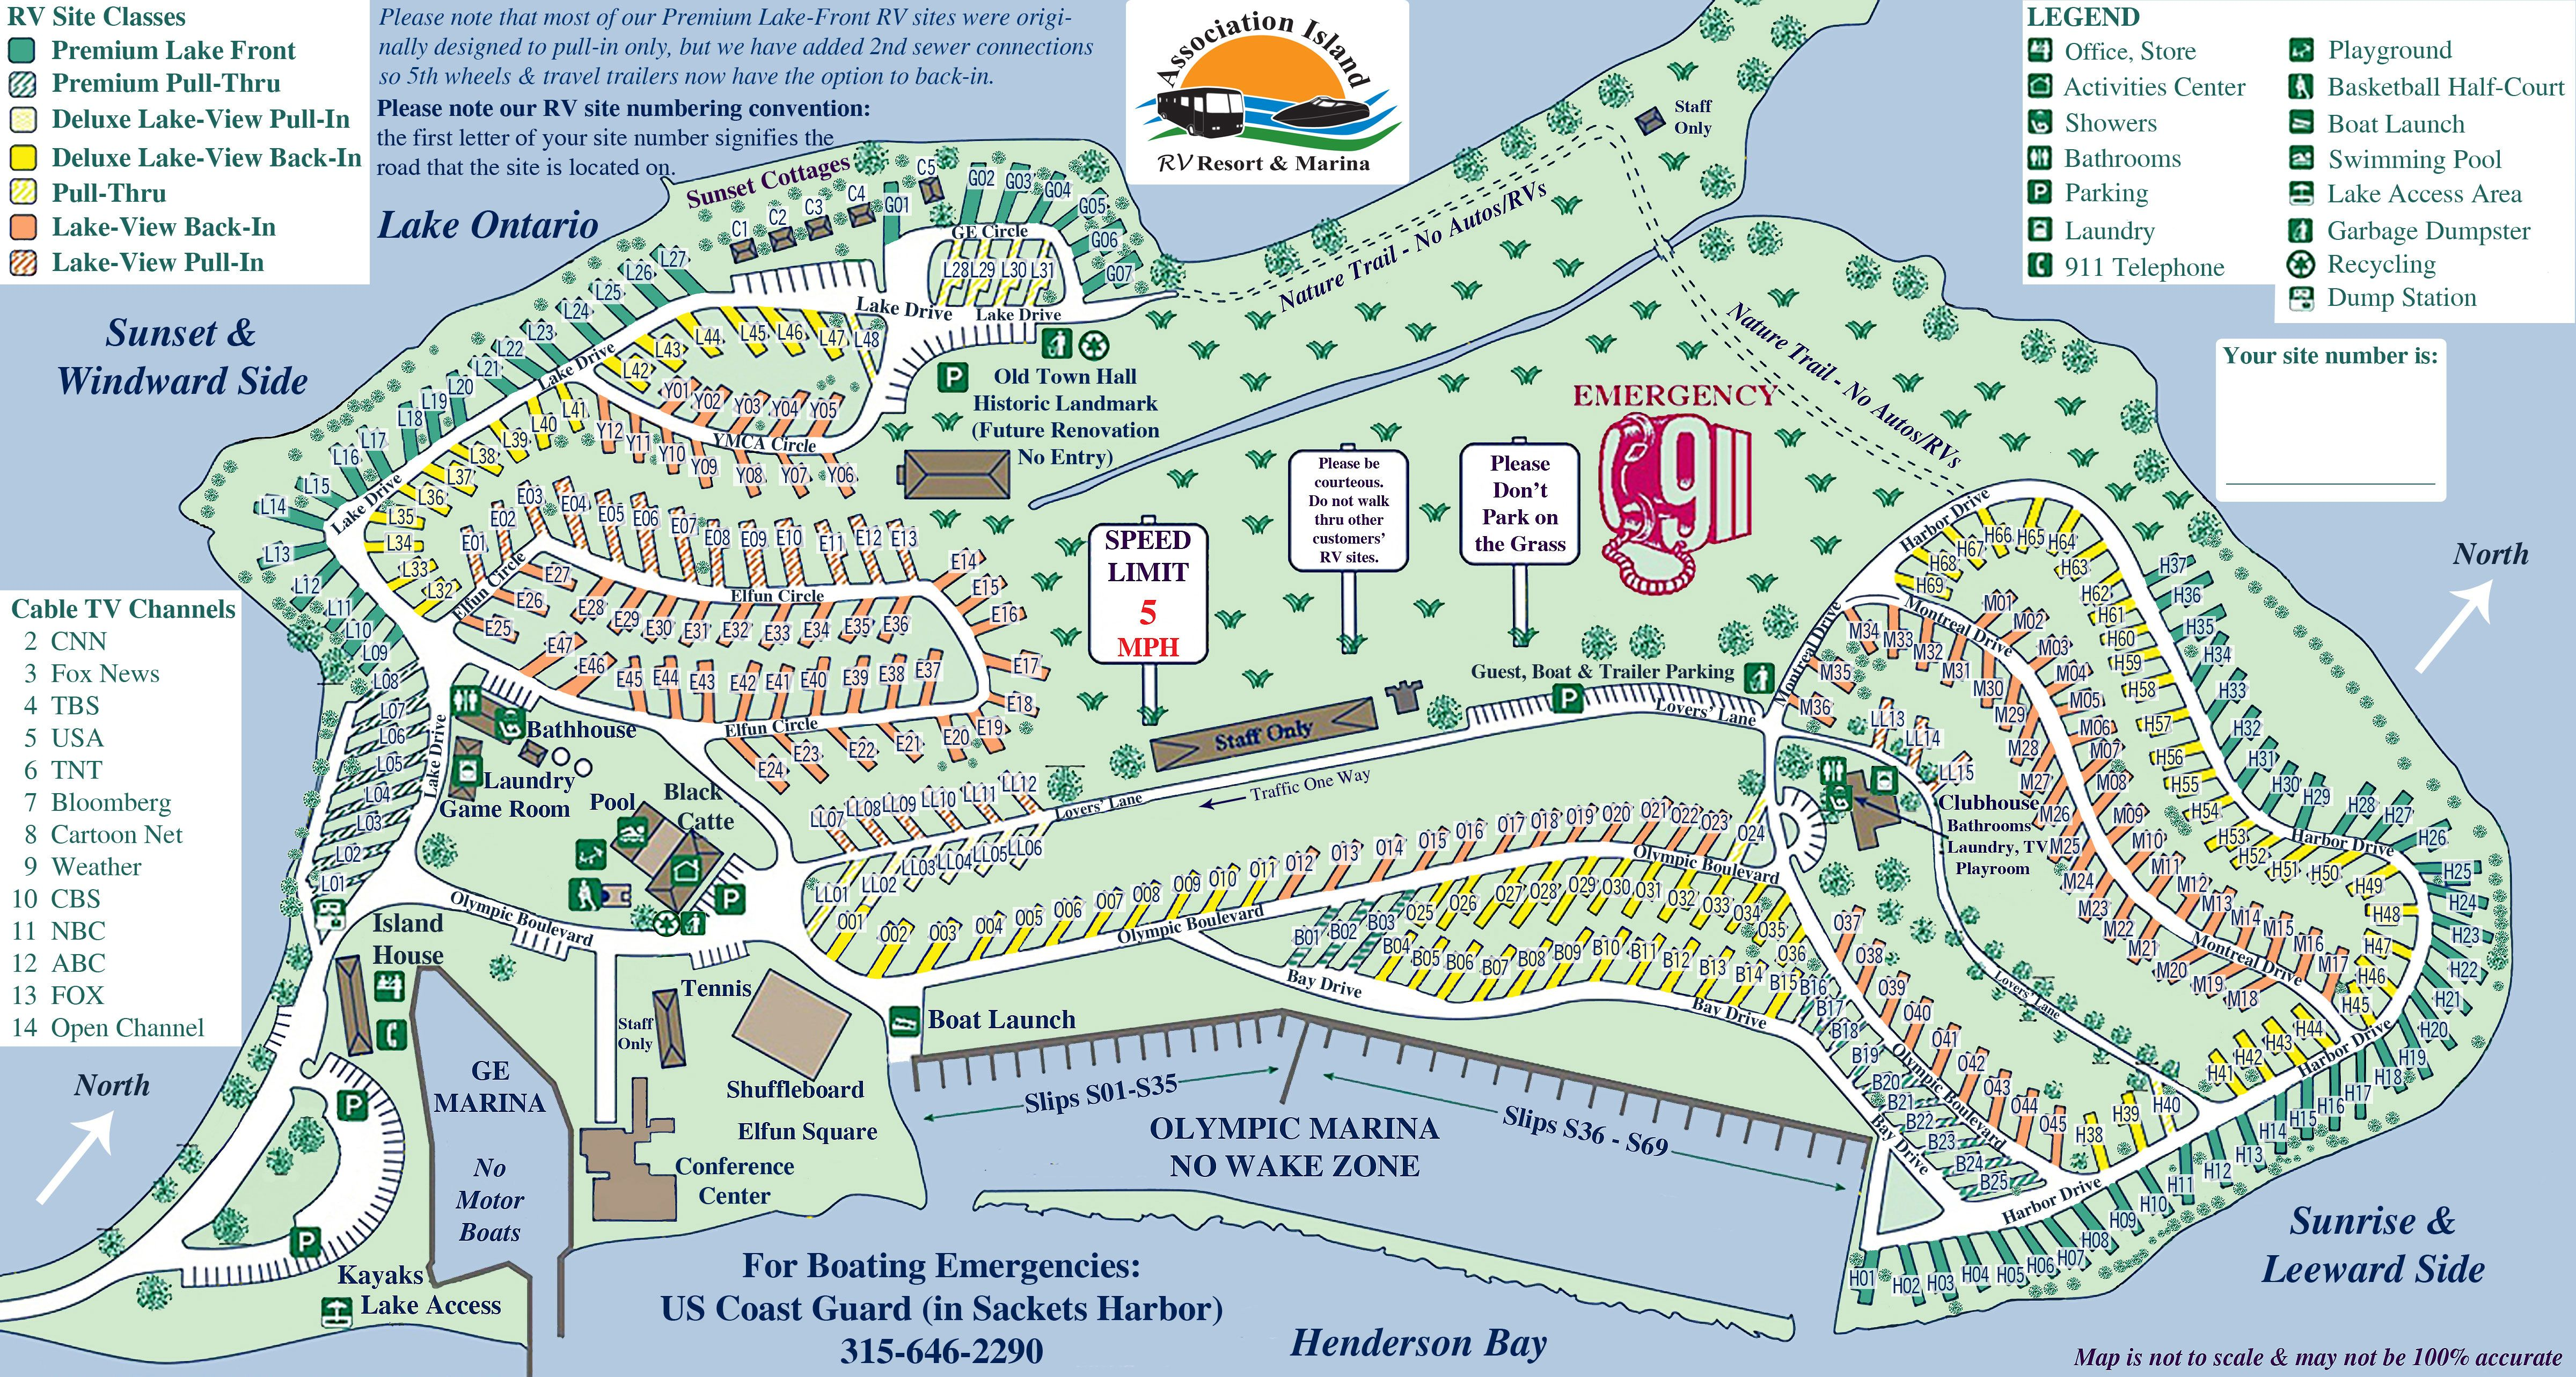 1000 Islands New York   Rv campgrounds, Rv camping, Rv sites